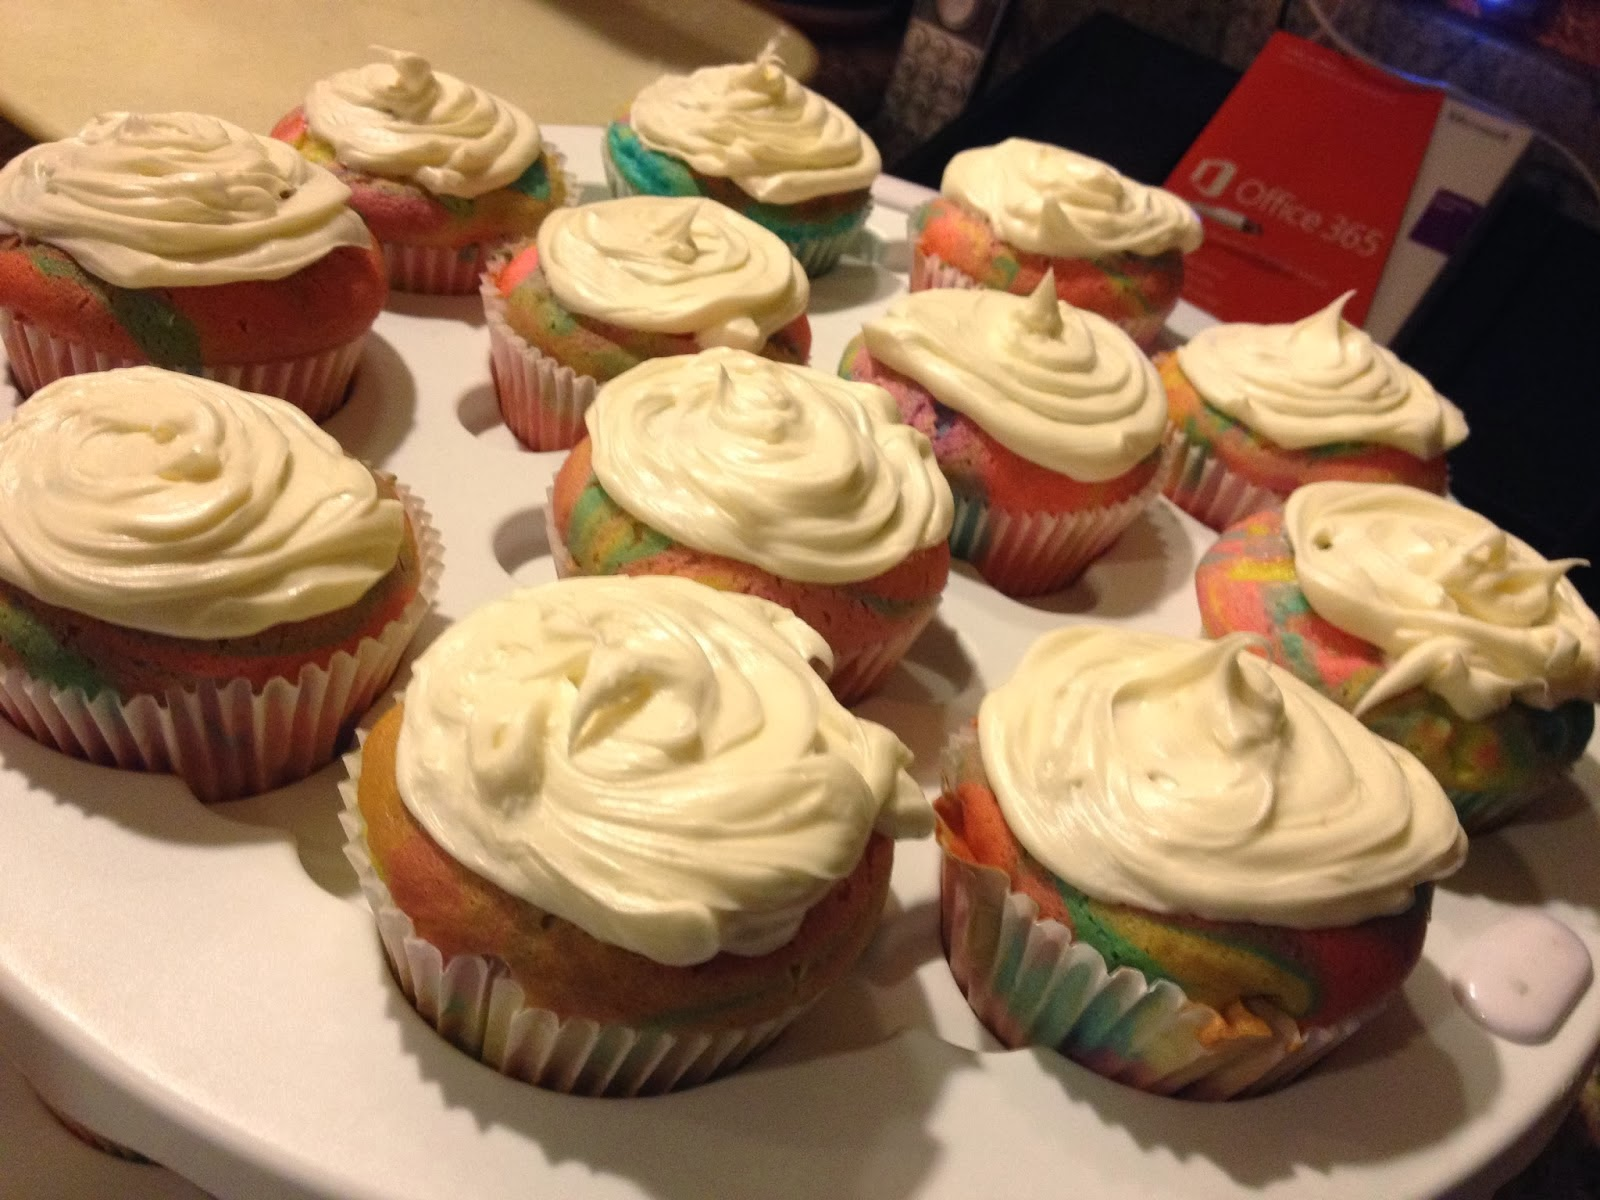 http://sisterswhat.blogspot.com/2014/01/neon-splatter-cupcakes.html